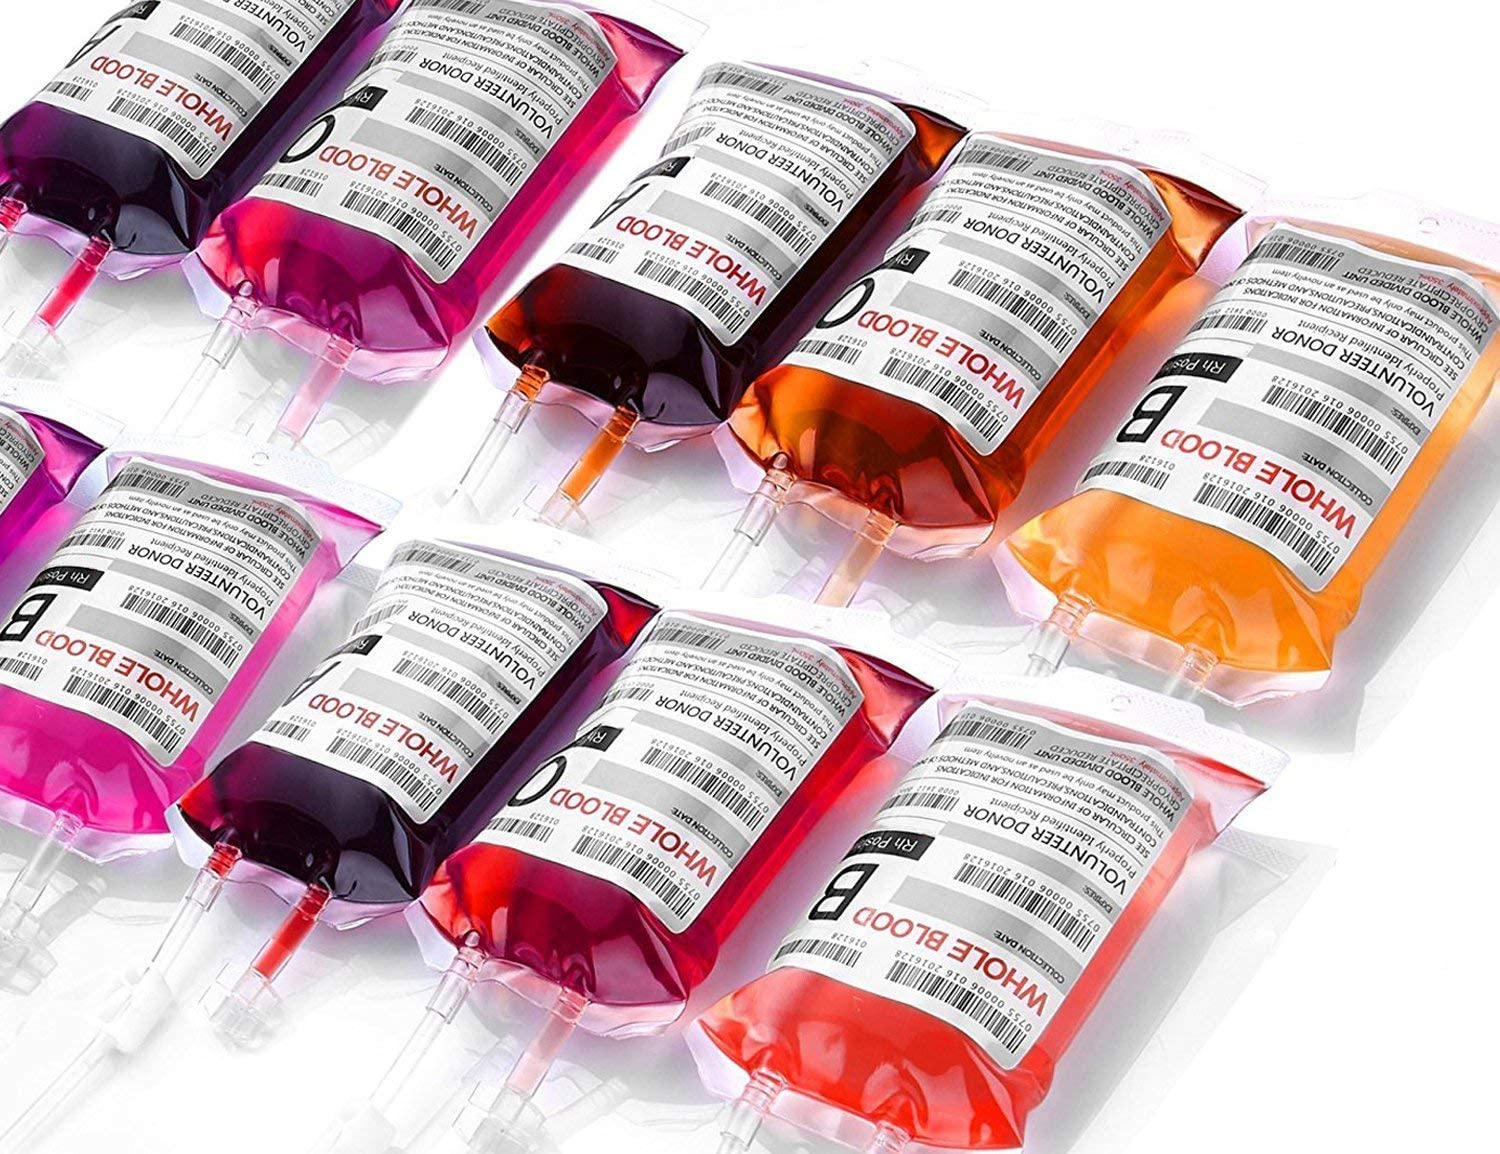 Costume Props Party Favors Blood Bags Drink Stand Up Pouch Dispensers Set of 10 IV Bags for Halloween